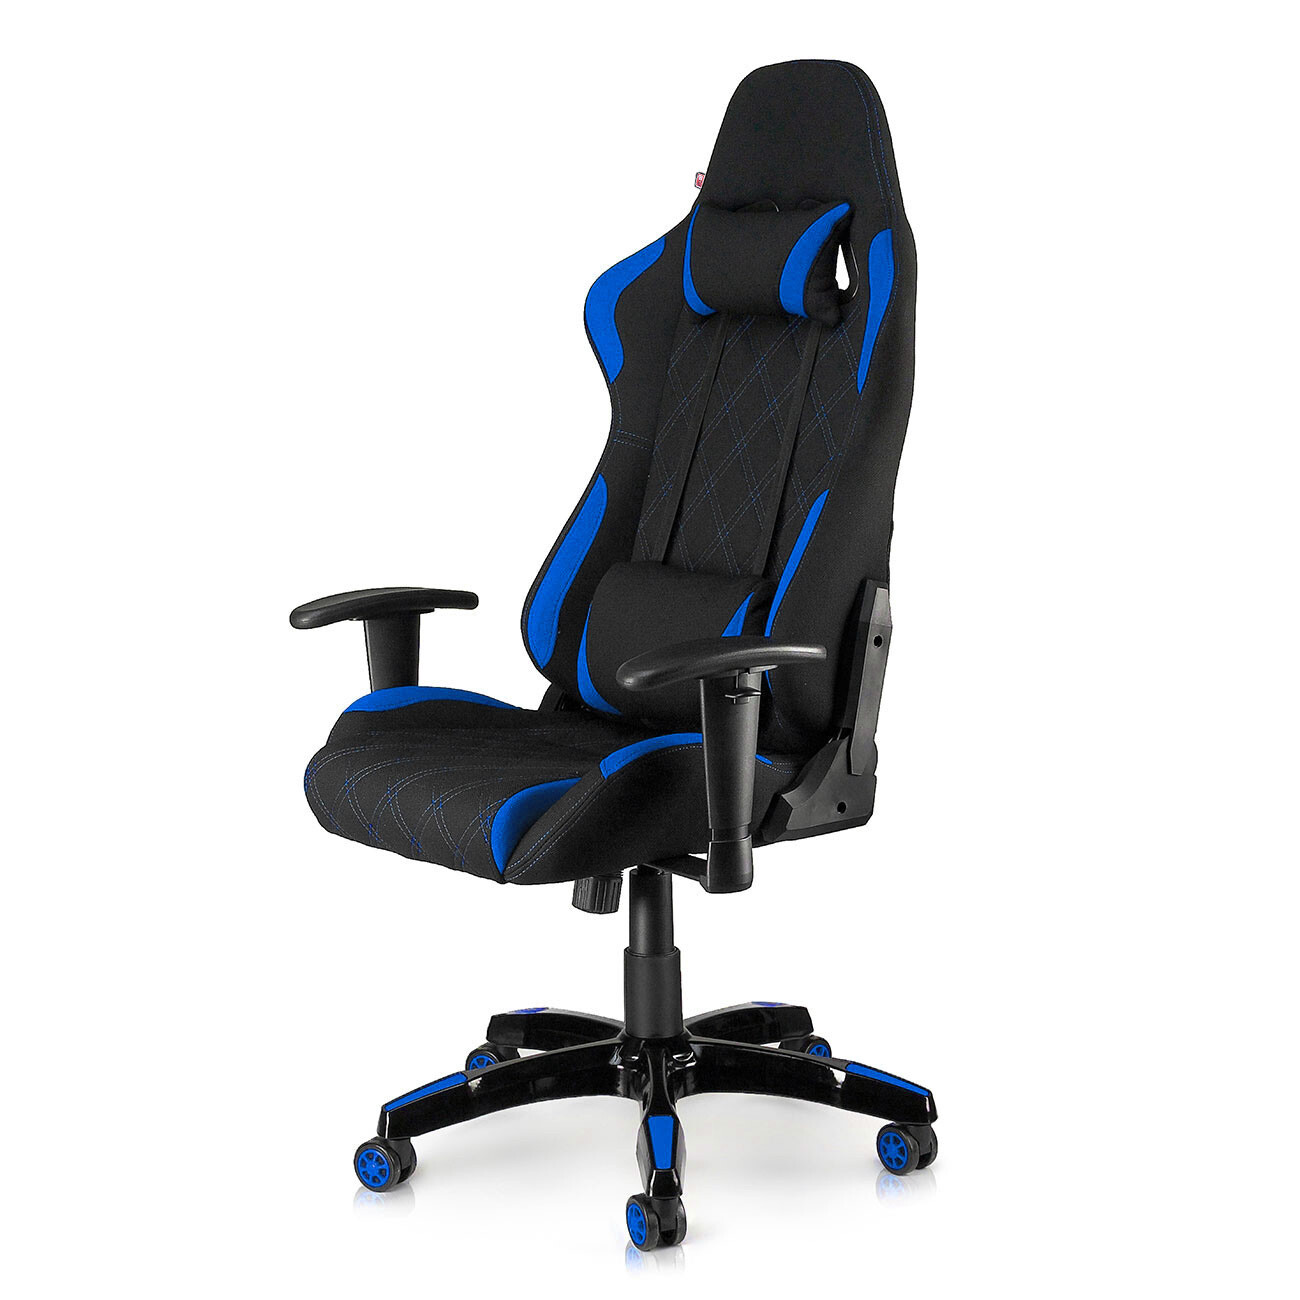 MY SIT Racing Chair Bürostuhl mit Stoff-Bezug - Blue Racer